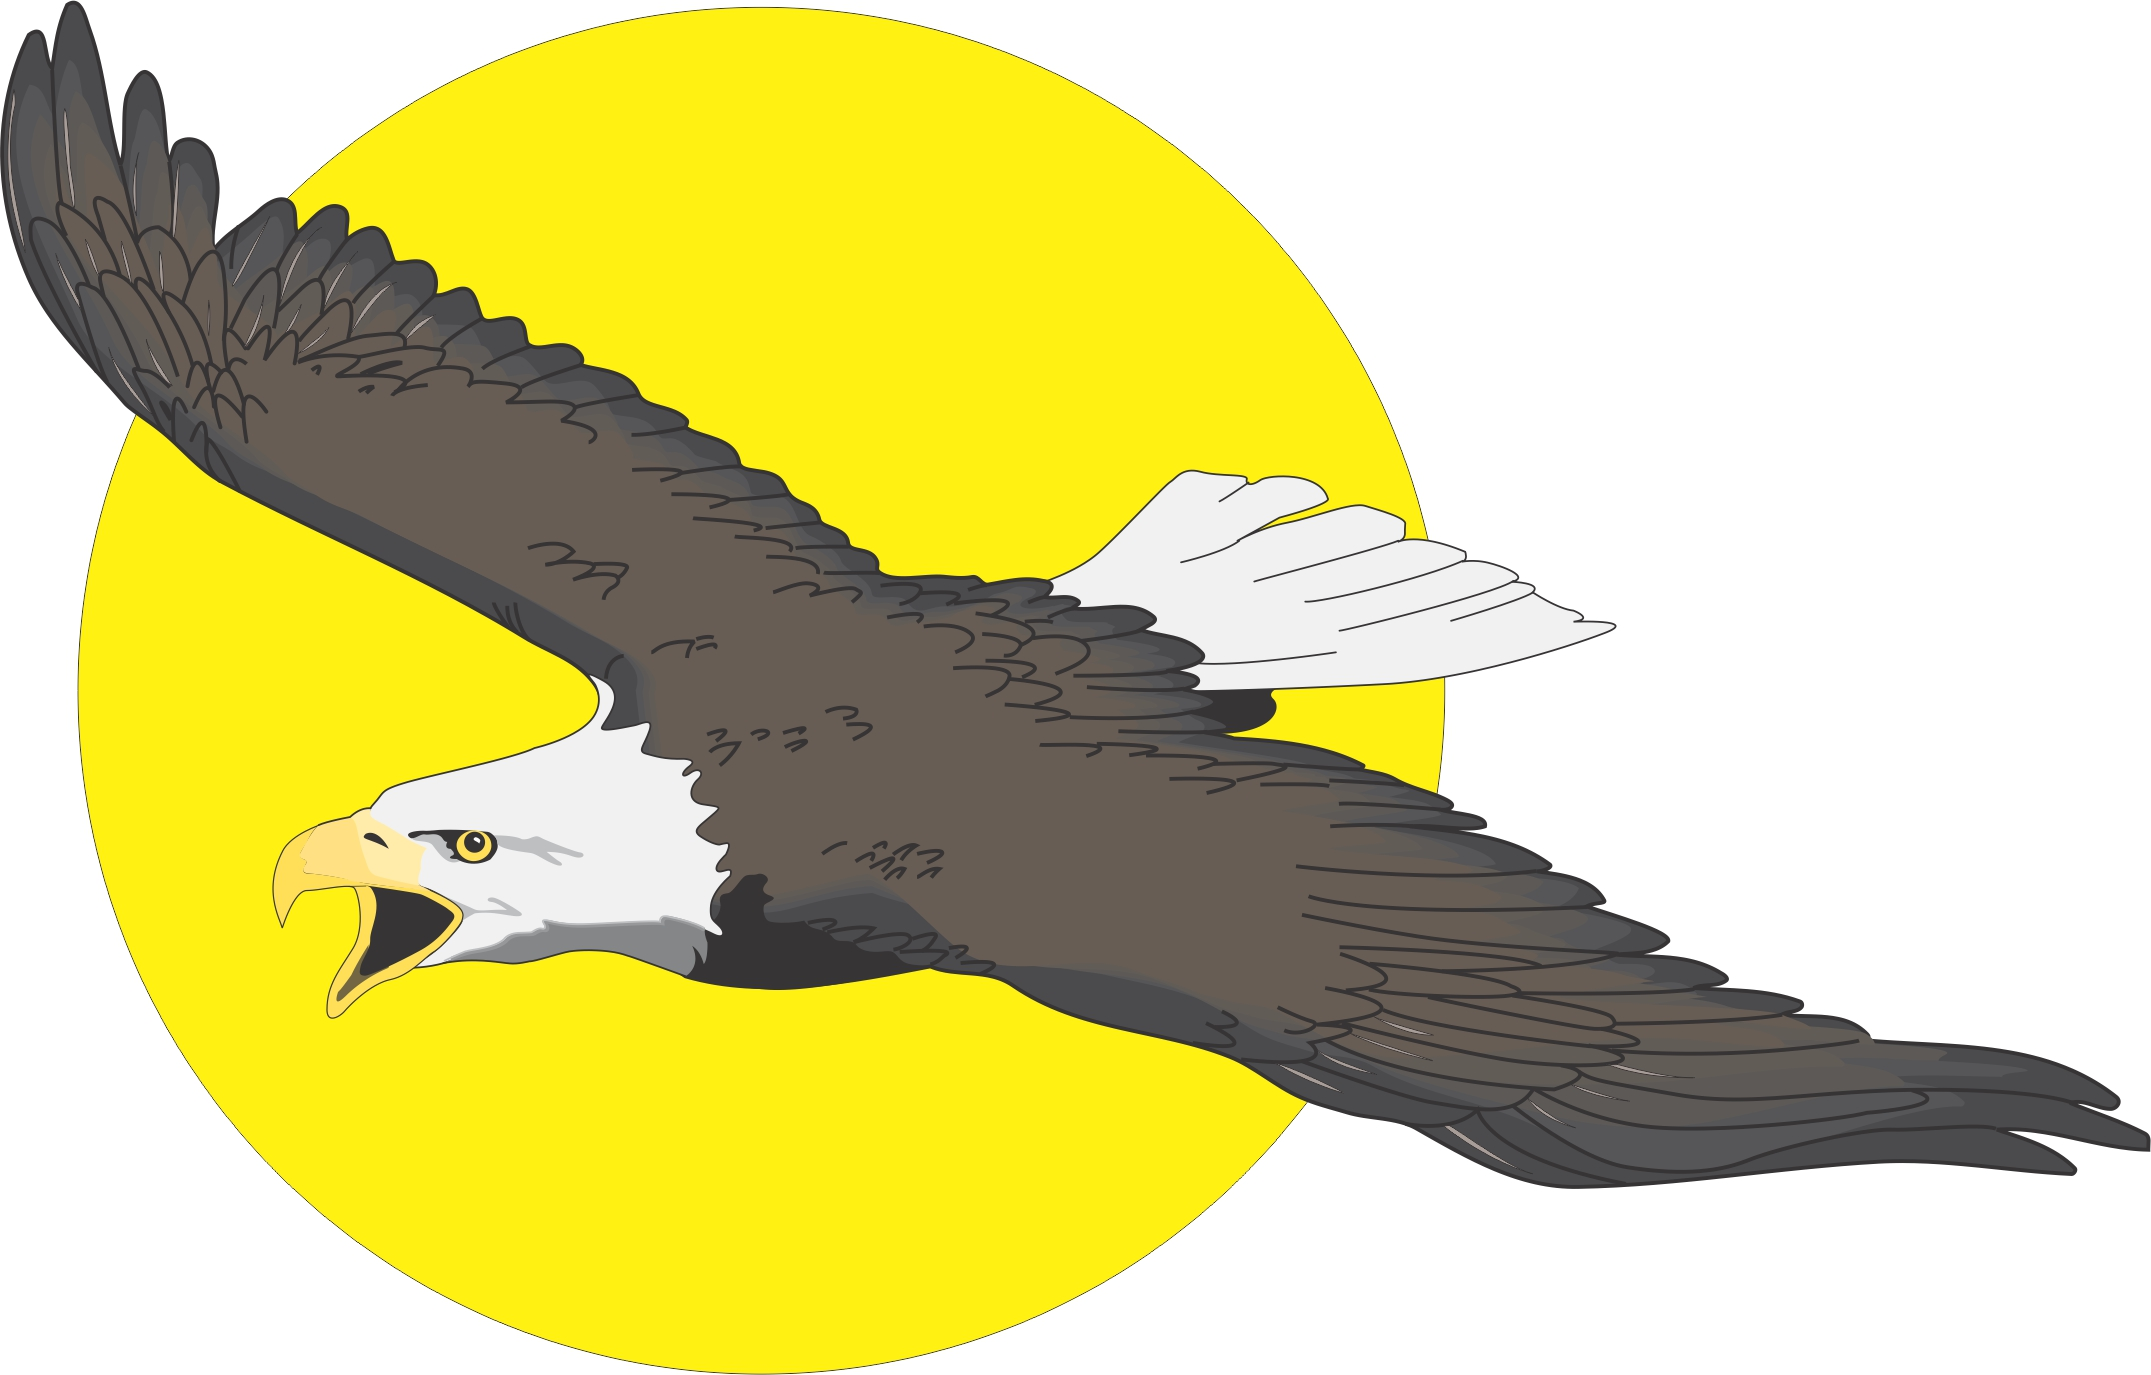 flying eagle clip art - photo #14